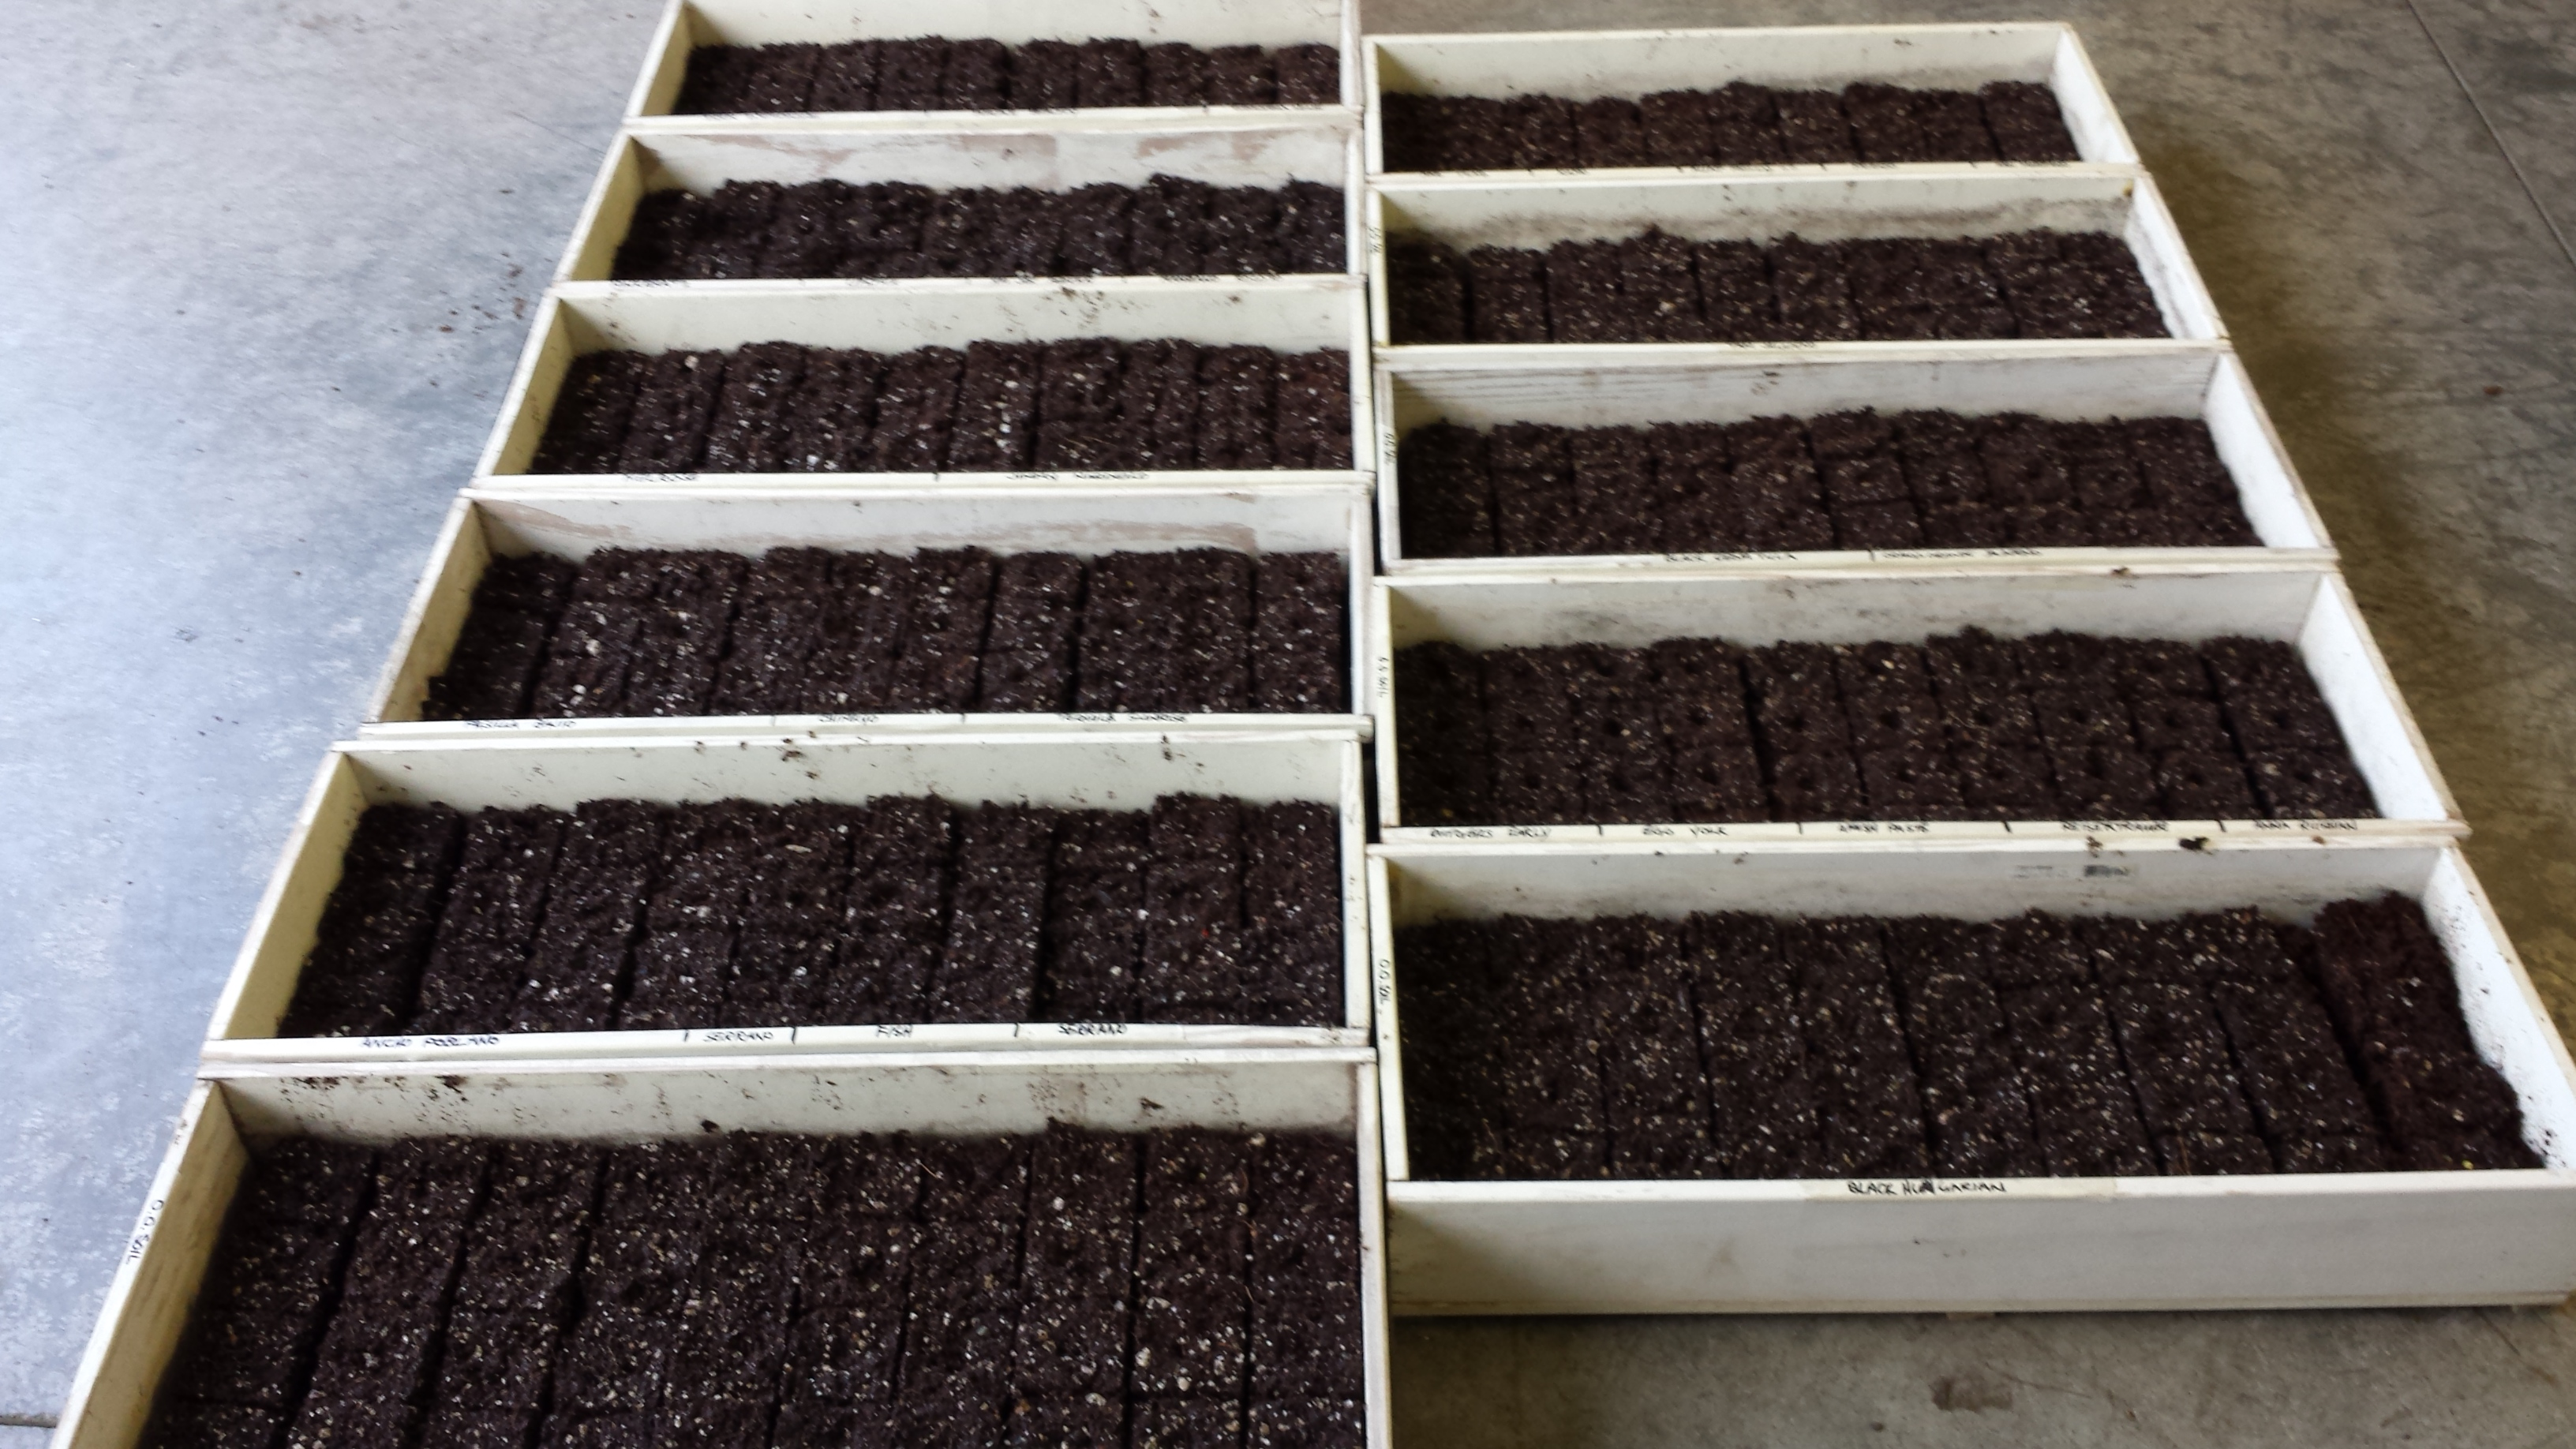 Seeded trays full of peppers, tomatoes, and eggplants.